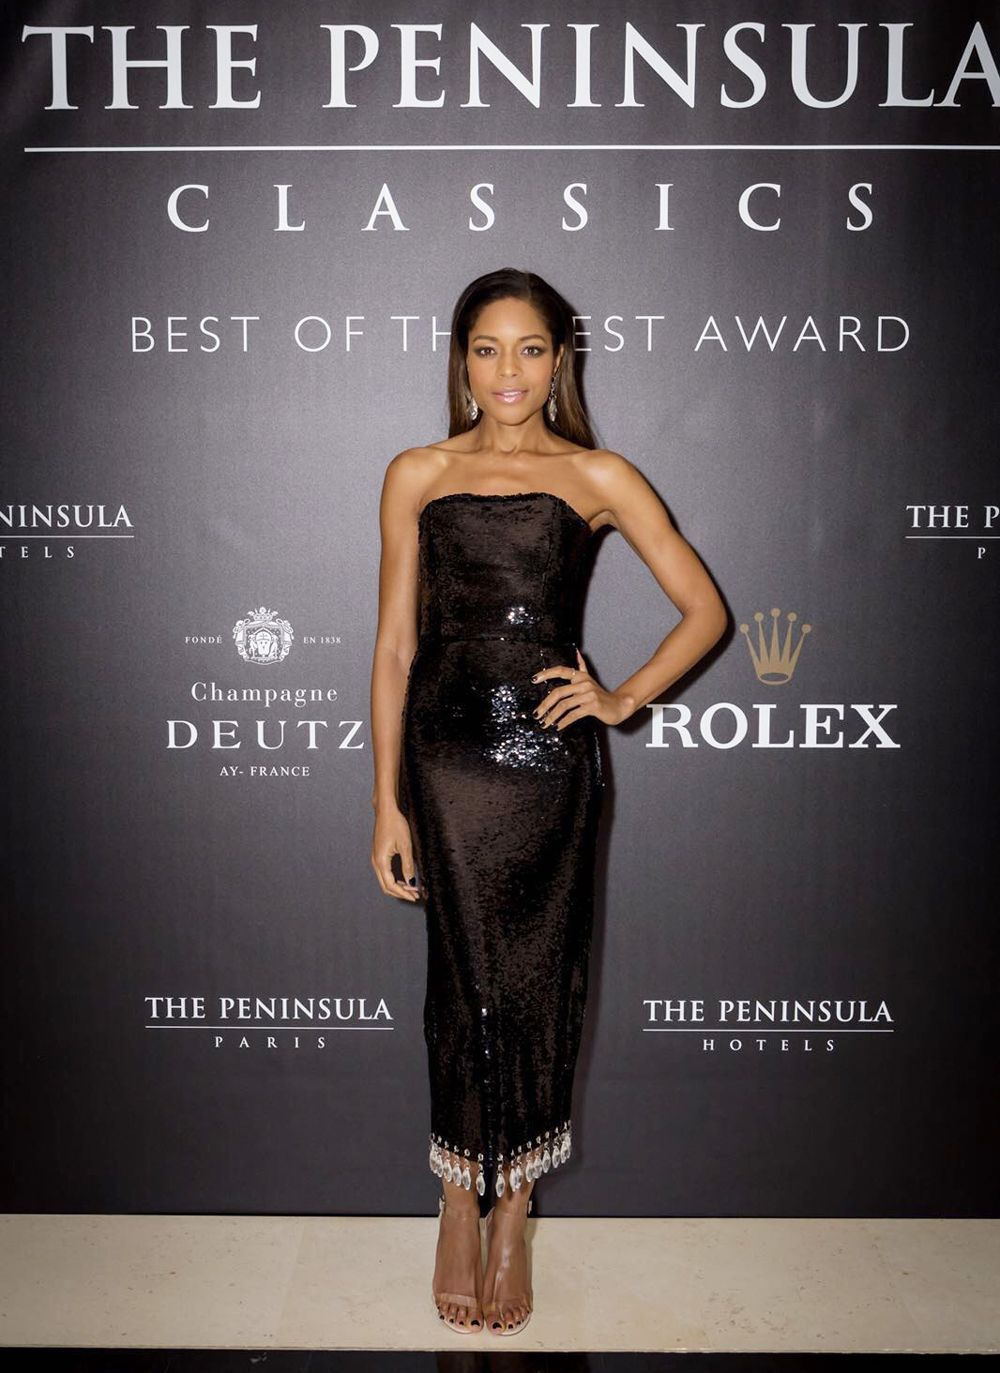 fddf3342b987de WHO  Naomie HarrisWHAT  Harris walked the red carpet at the 3rd Annual The  Peninsula Classics Best of the Best Award in Paris. WEAR  Arlington dress   Public ...